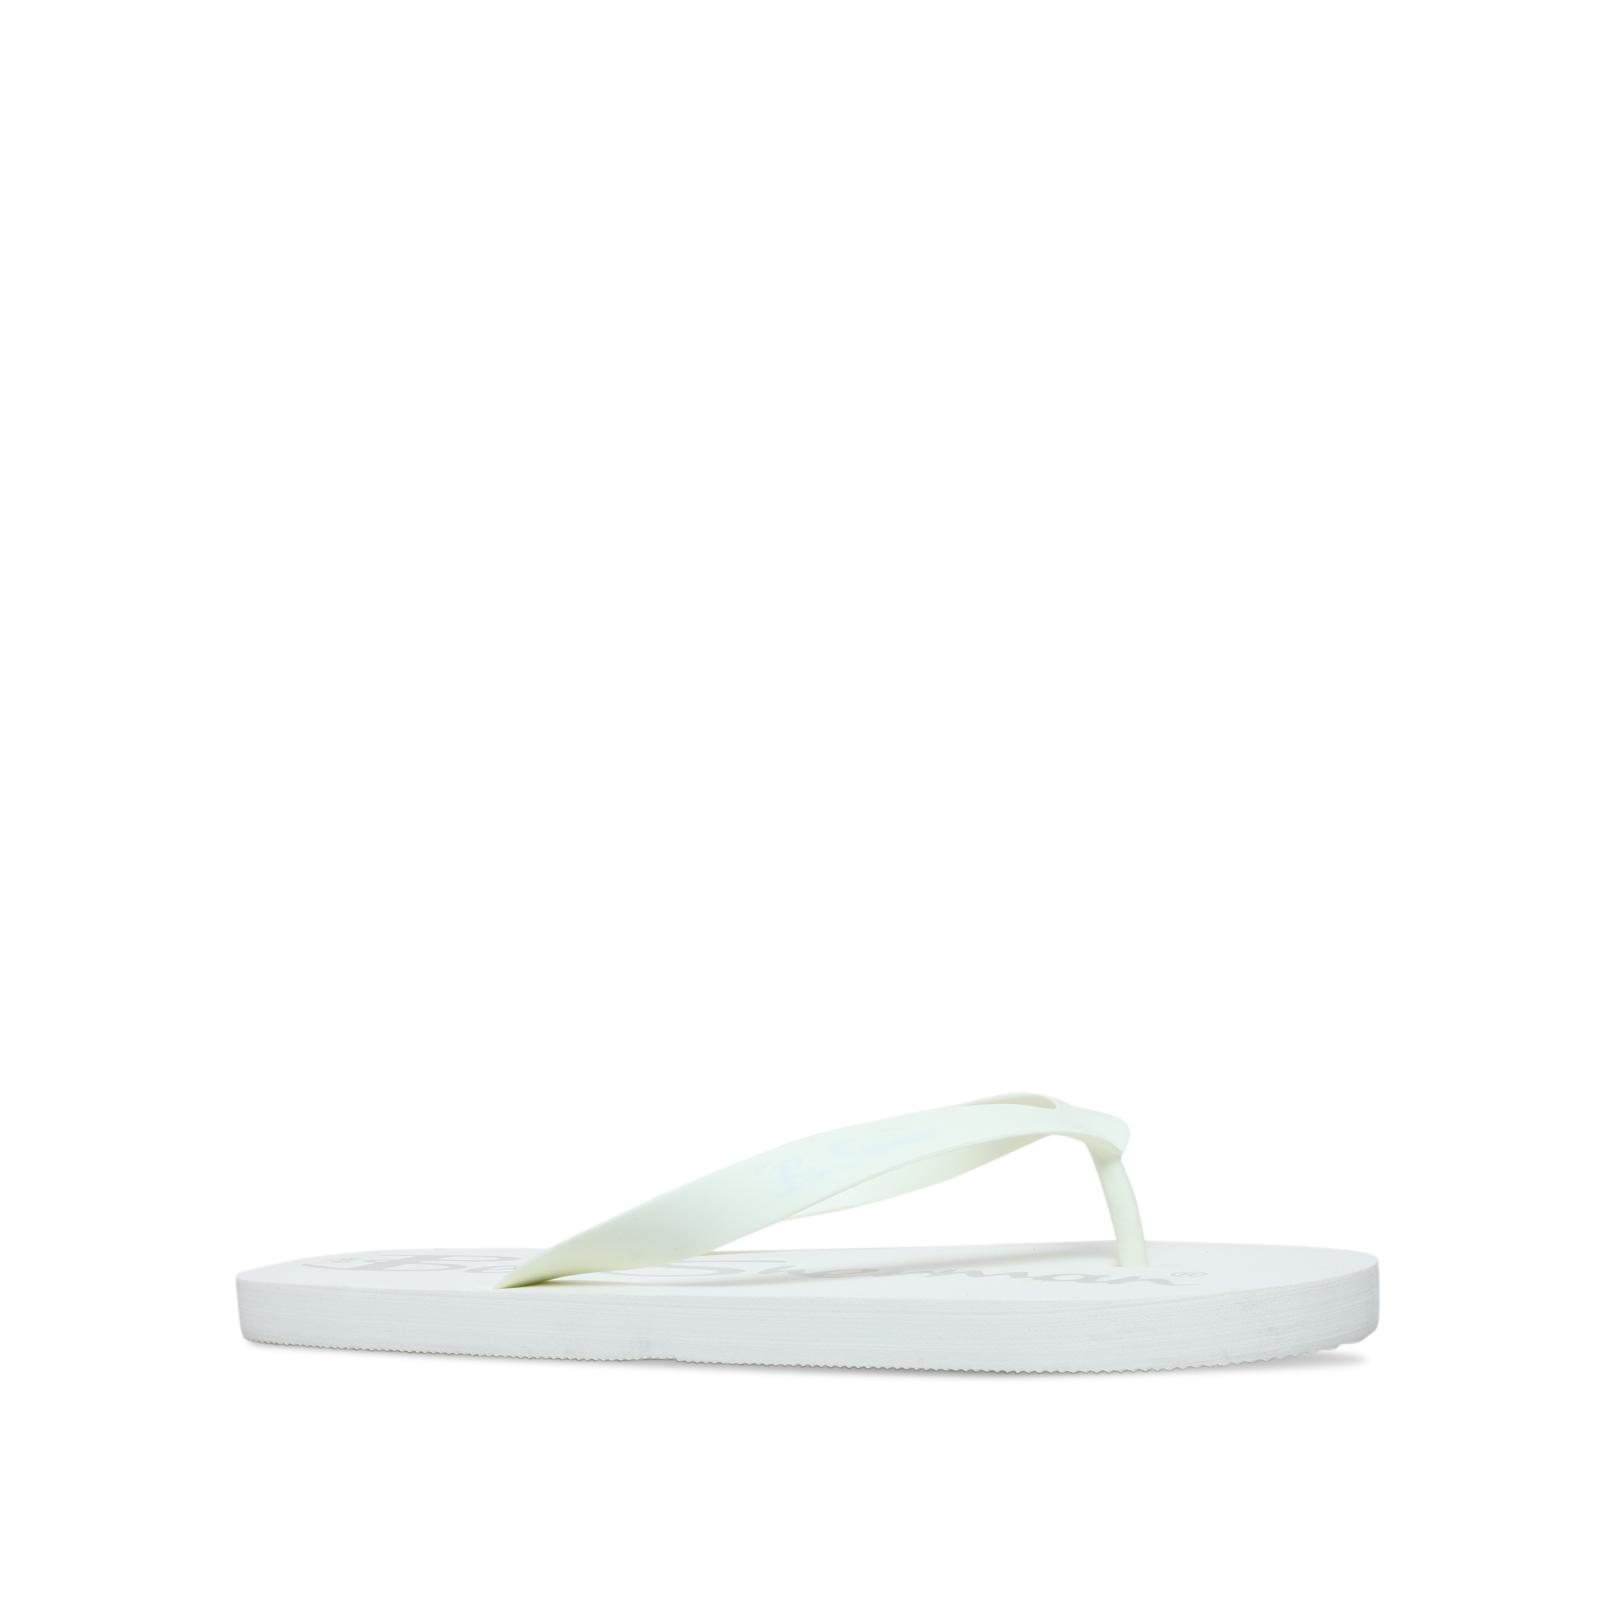 833abf1fa0d48 Ben Sherman Bora in White for Men - Save 25% - Lyst